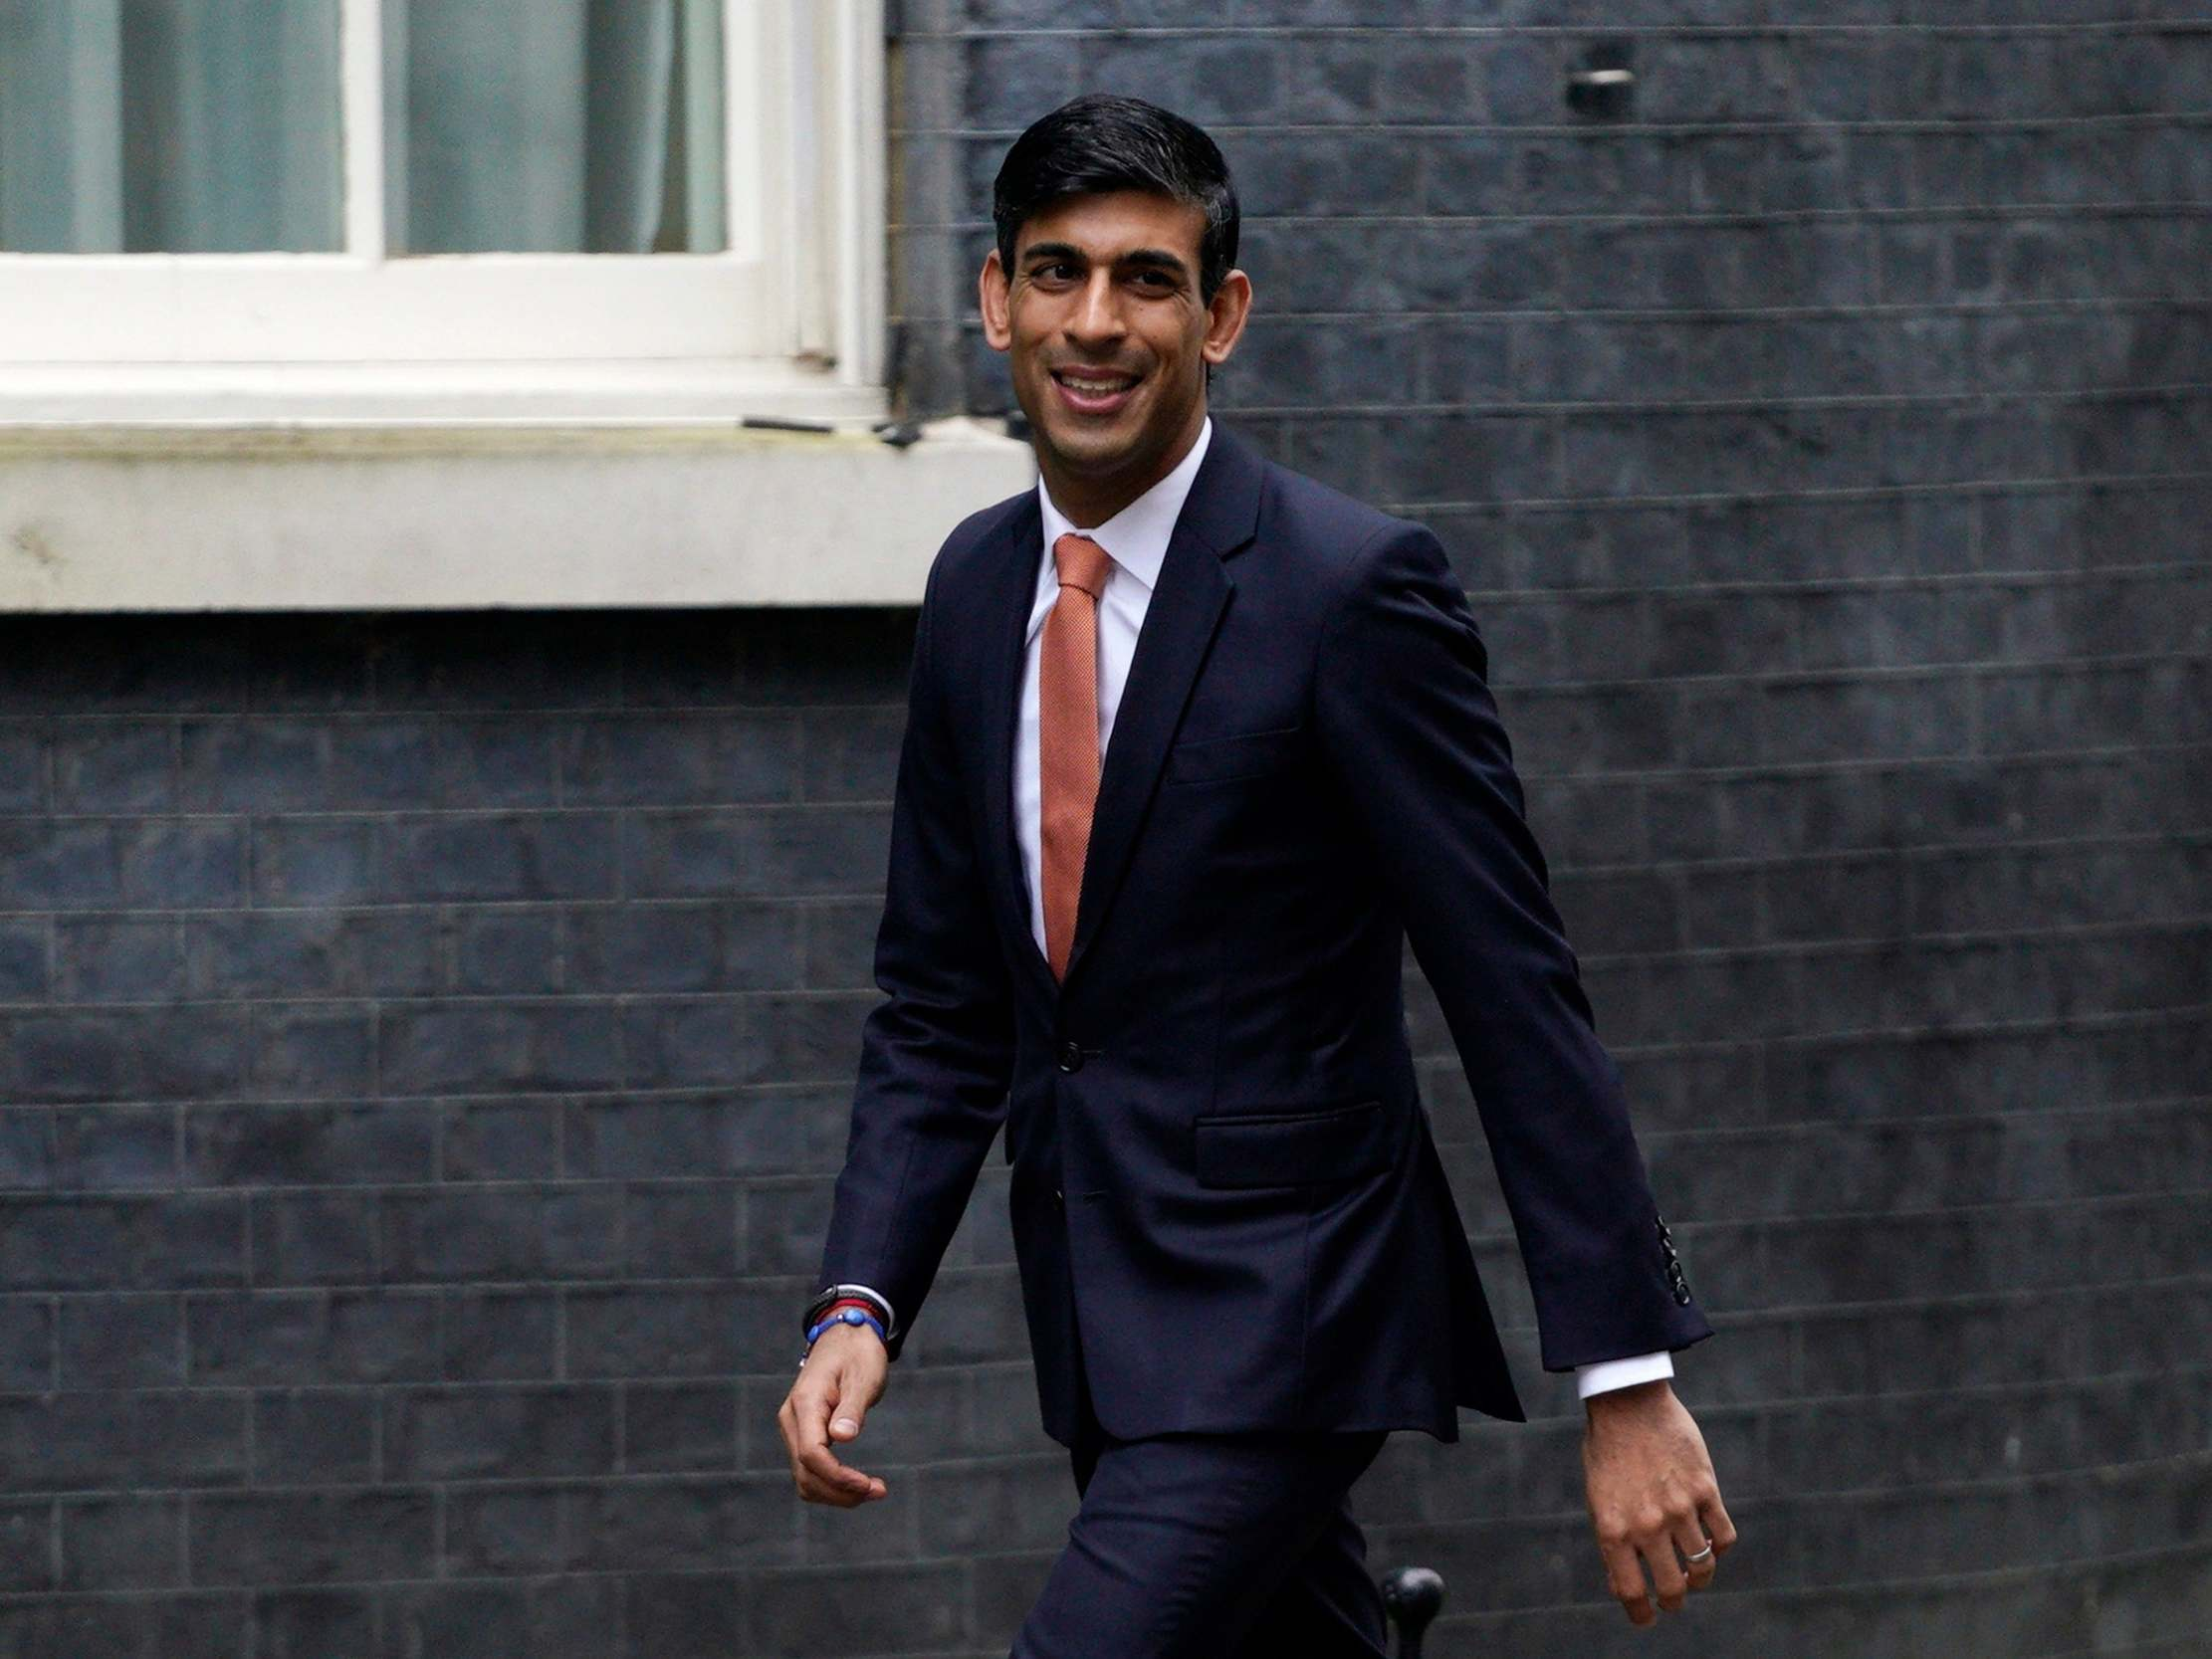 Indian press delighted at number of British-Indians in UK government after reshuffle